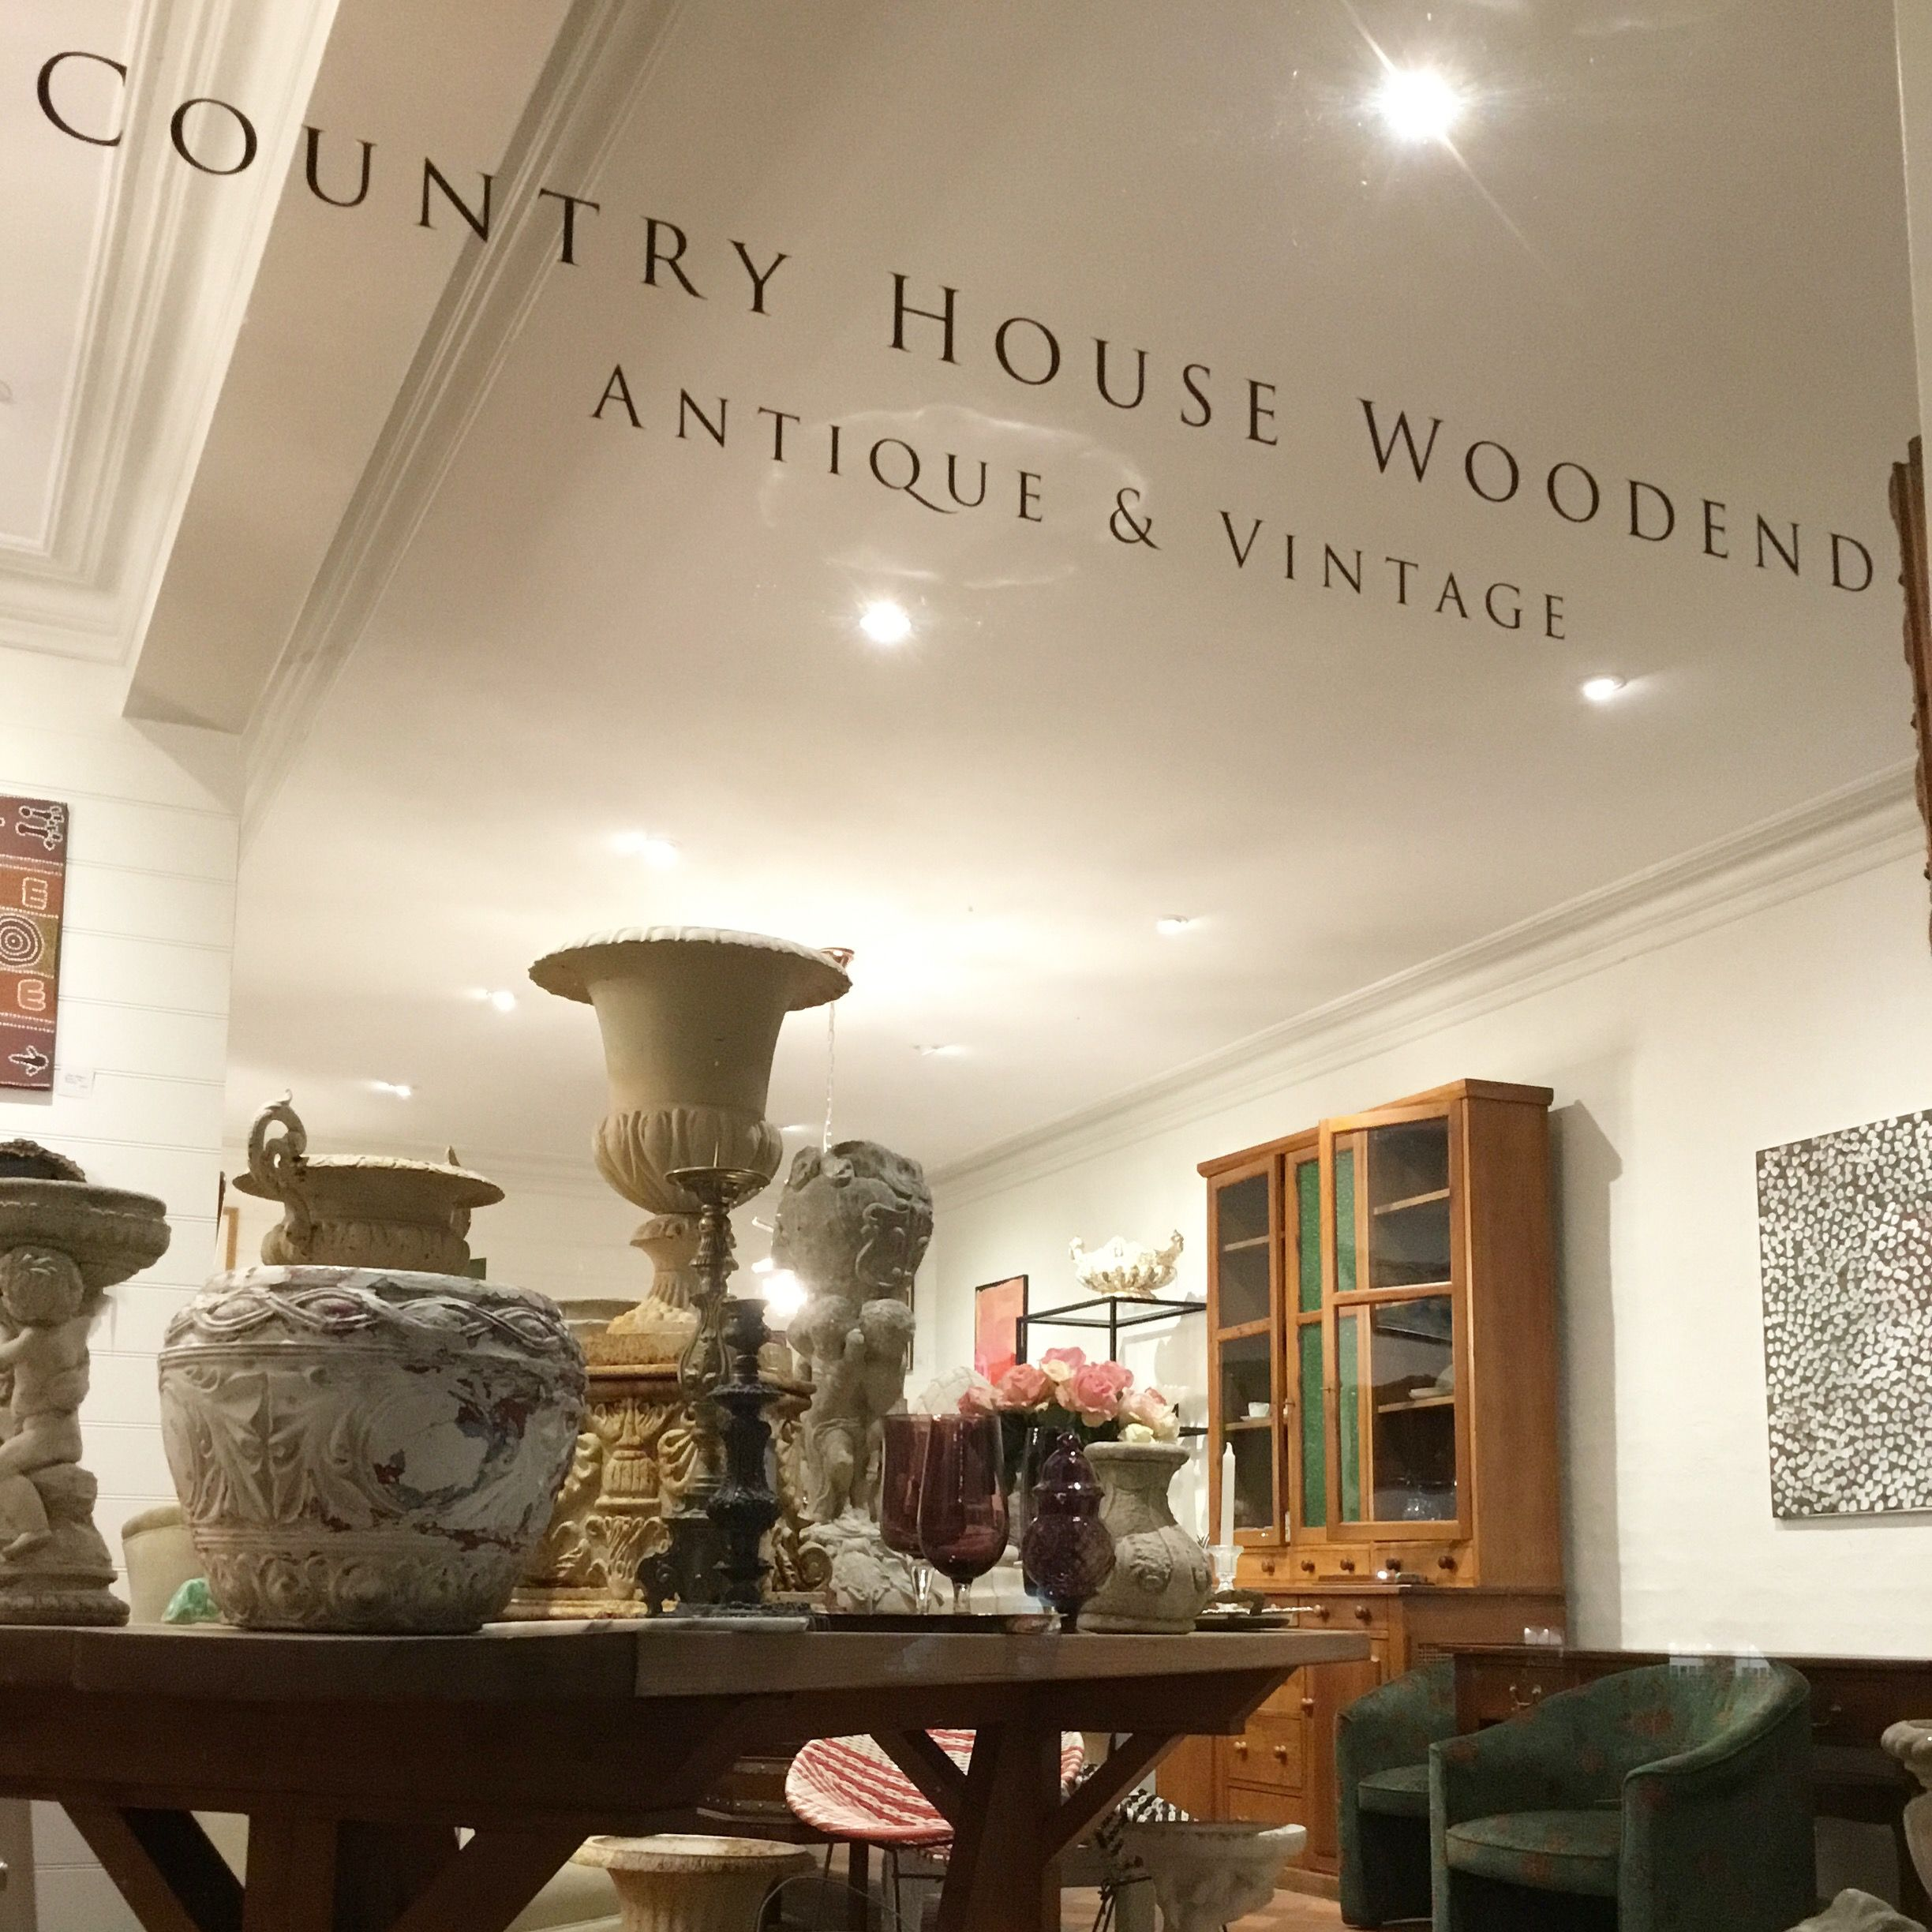 Window Shopping At Country House Woodend